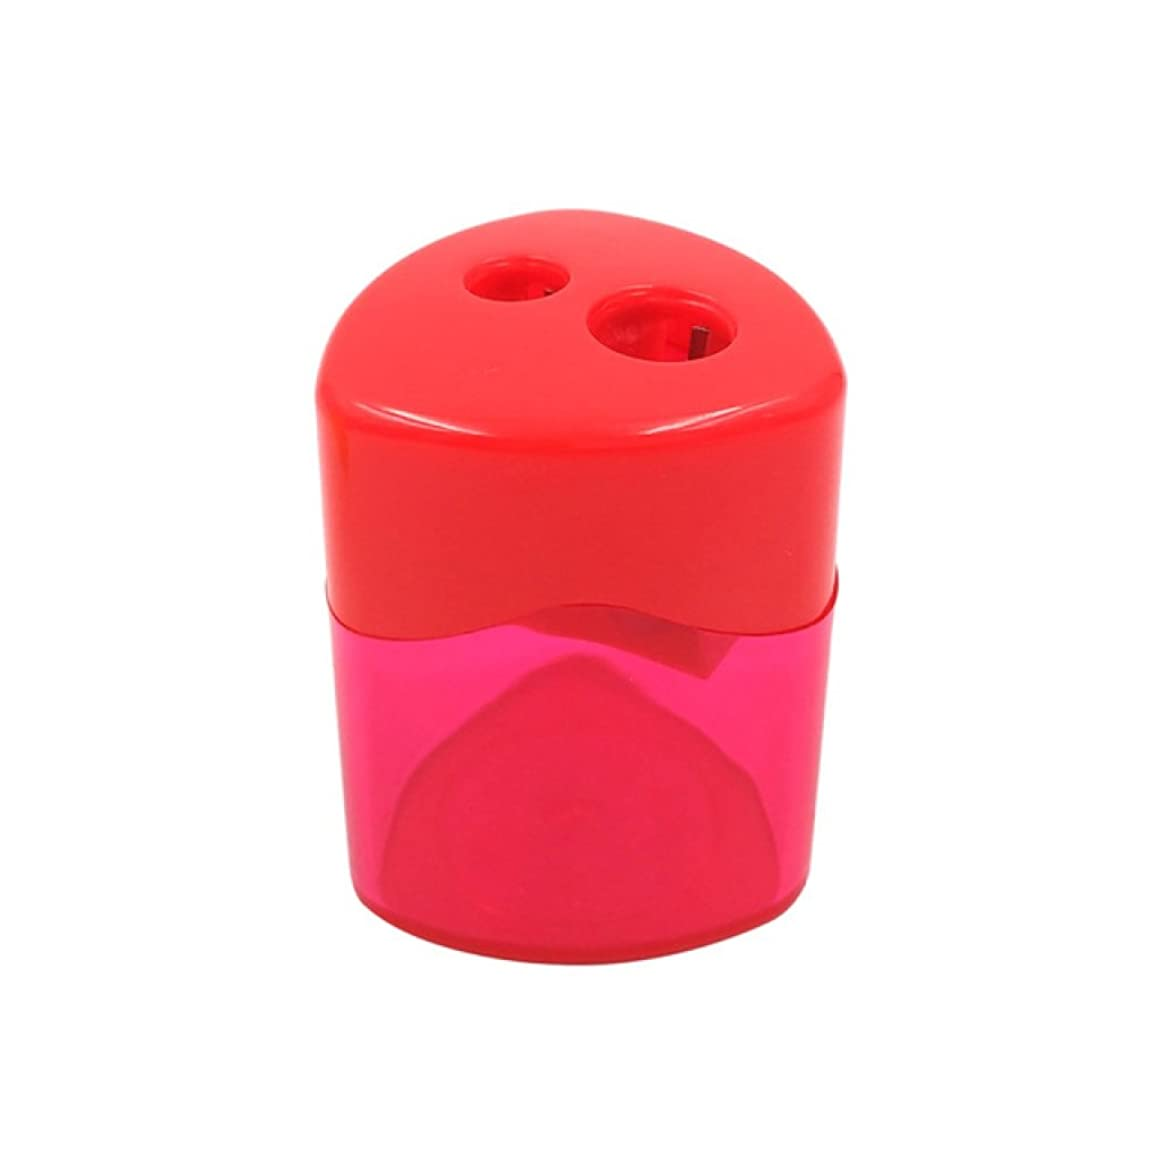 Pencil Sharpener with 2 Holes (0,31in & 0,47in/8mm & 12 mm) for Pencils Sketch Pencils Drawing Supplies